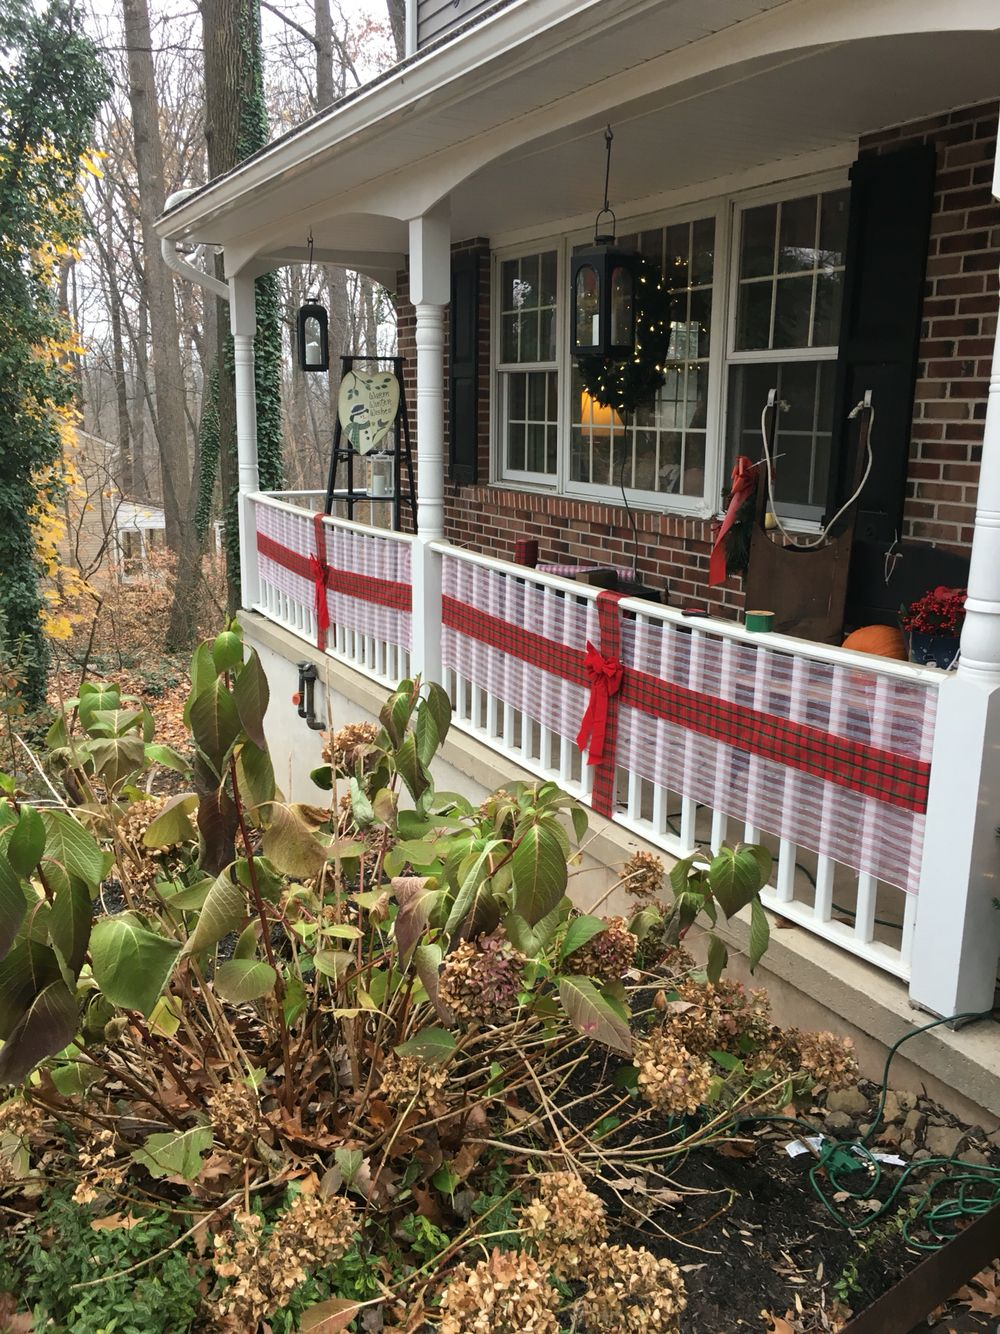 xmas decorations use decorative mesh and plaid ribbon to make your front porch railing look like a wrapped - Christmas Decorations For Front Porch Railings